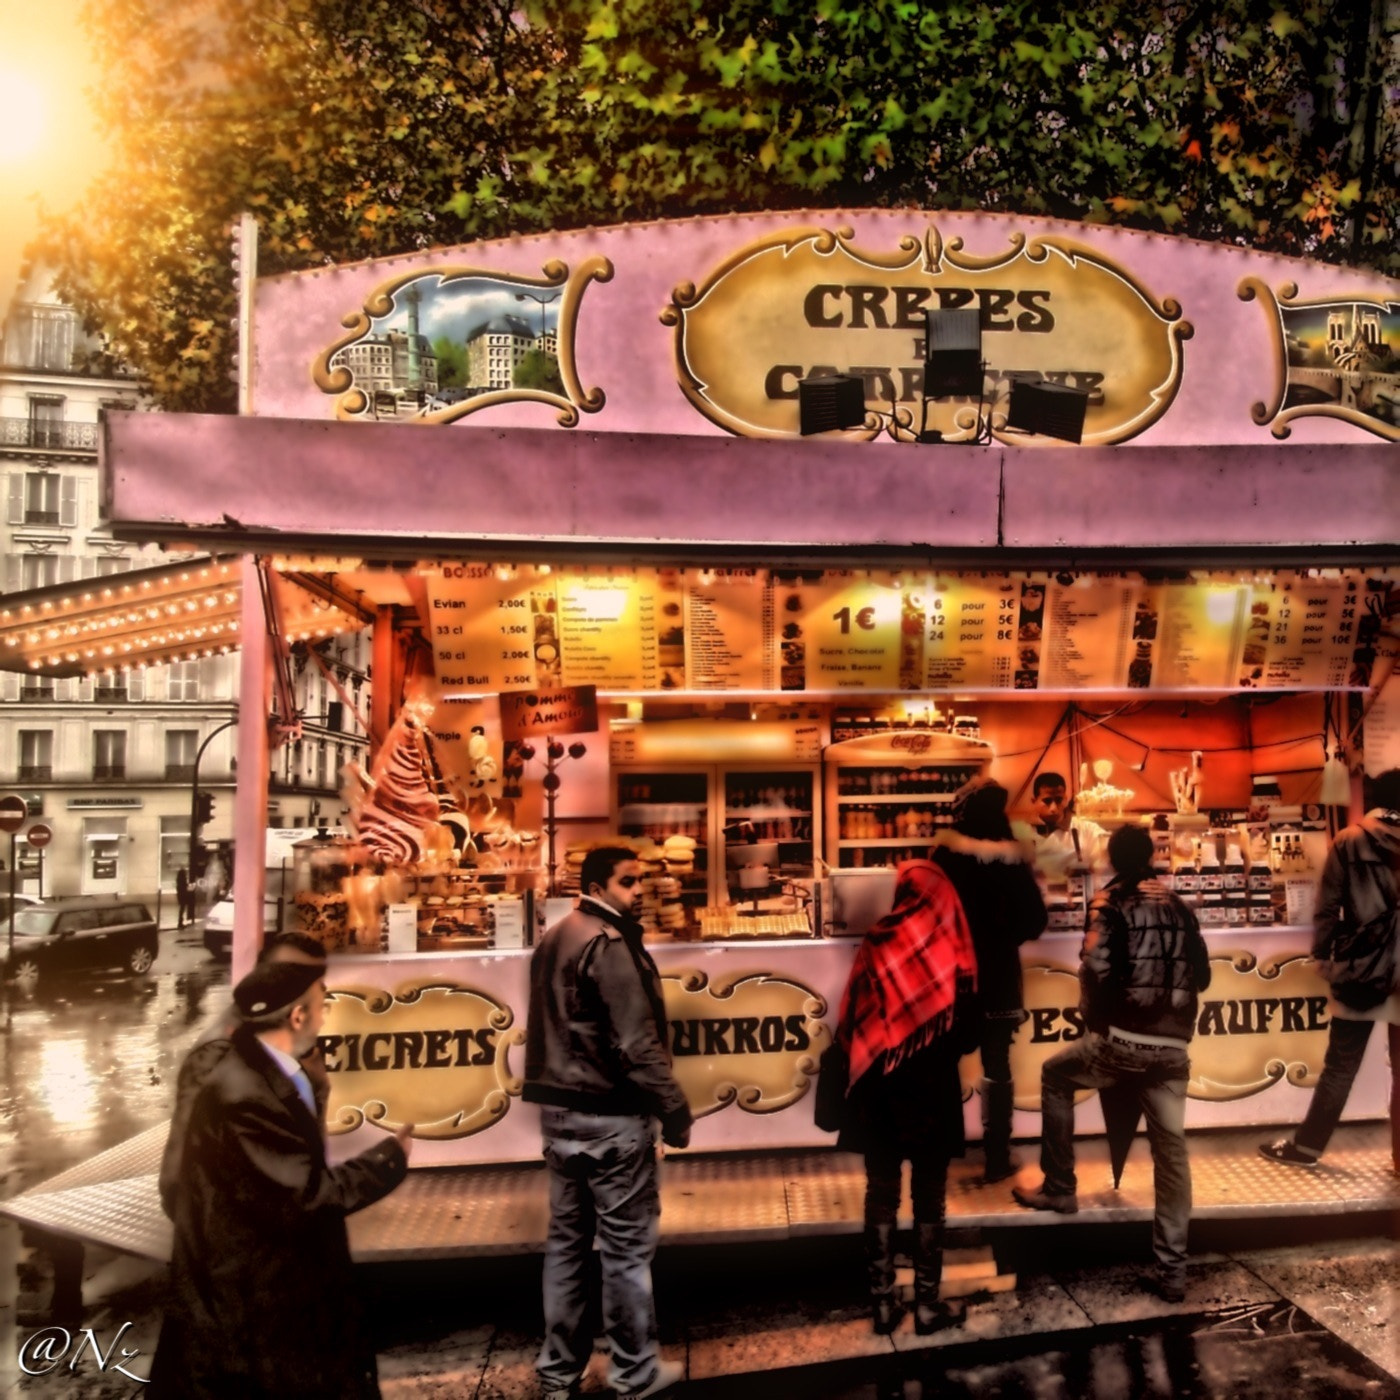 Photograph Crepes in Paris... Mmmmm... by Nebula Noize on 500px